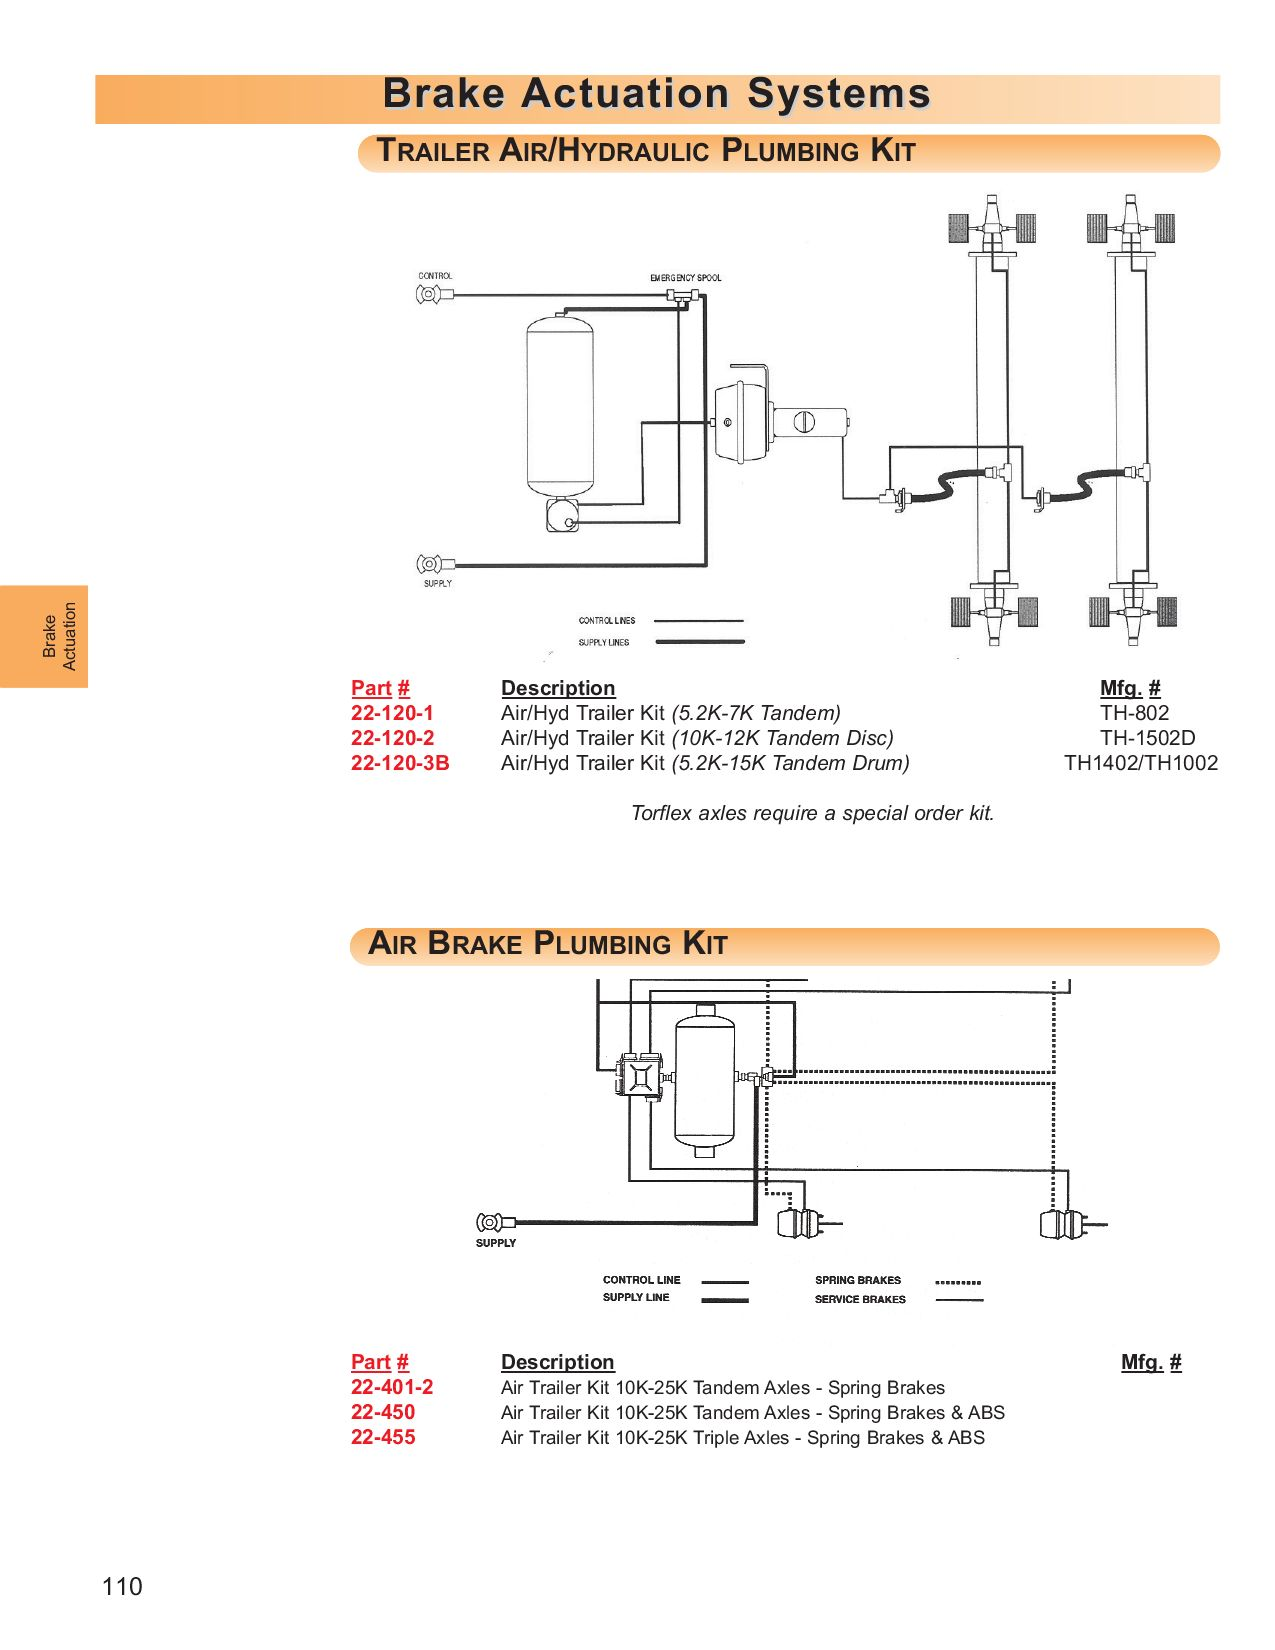 Air Vacuum Abs Kits By Kevin Wiese Issuu Brakes Schematic